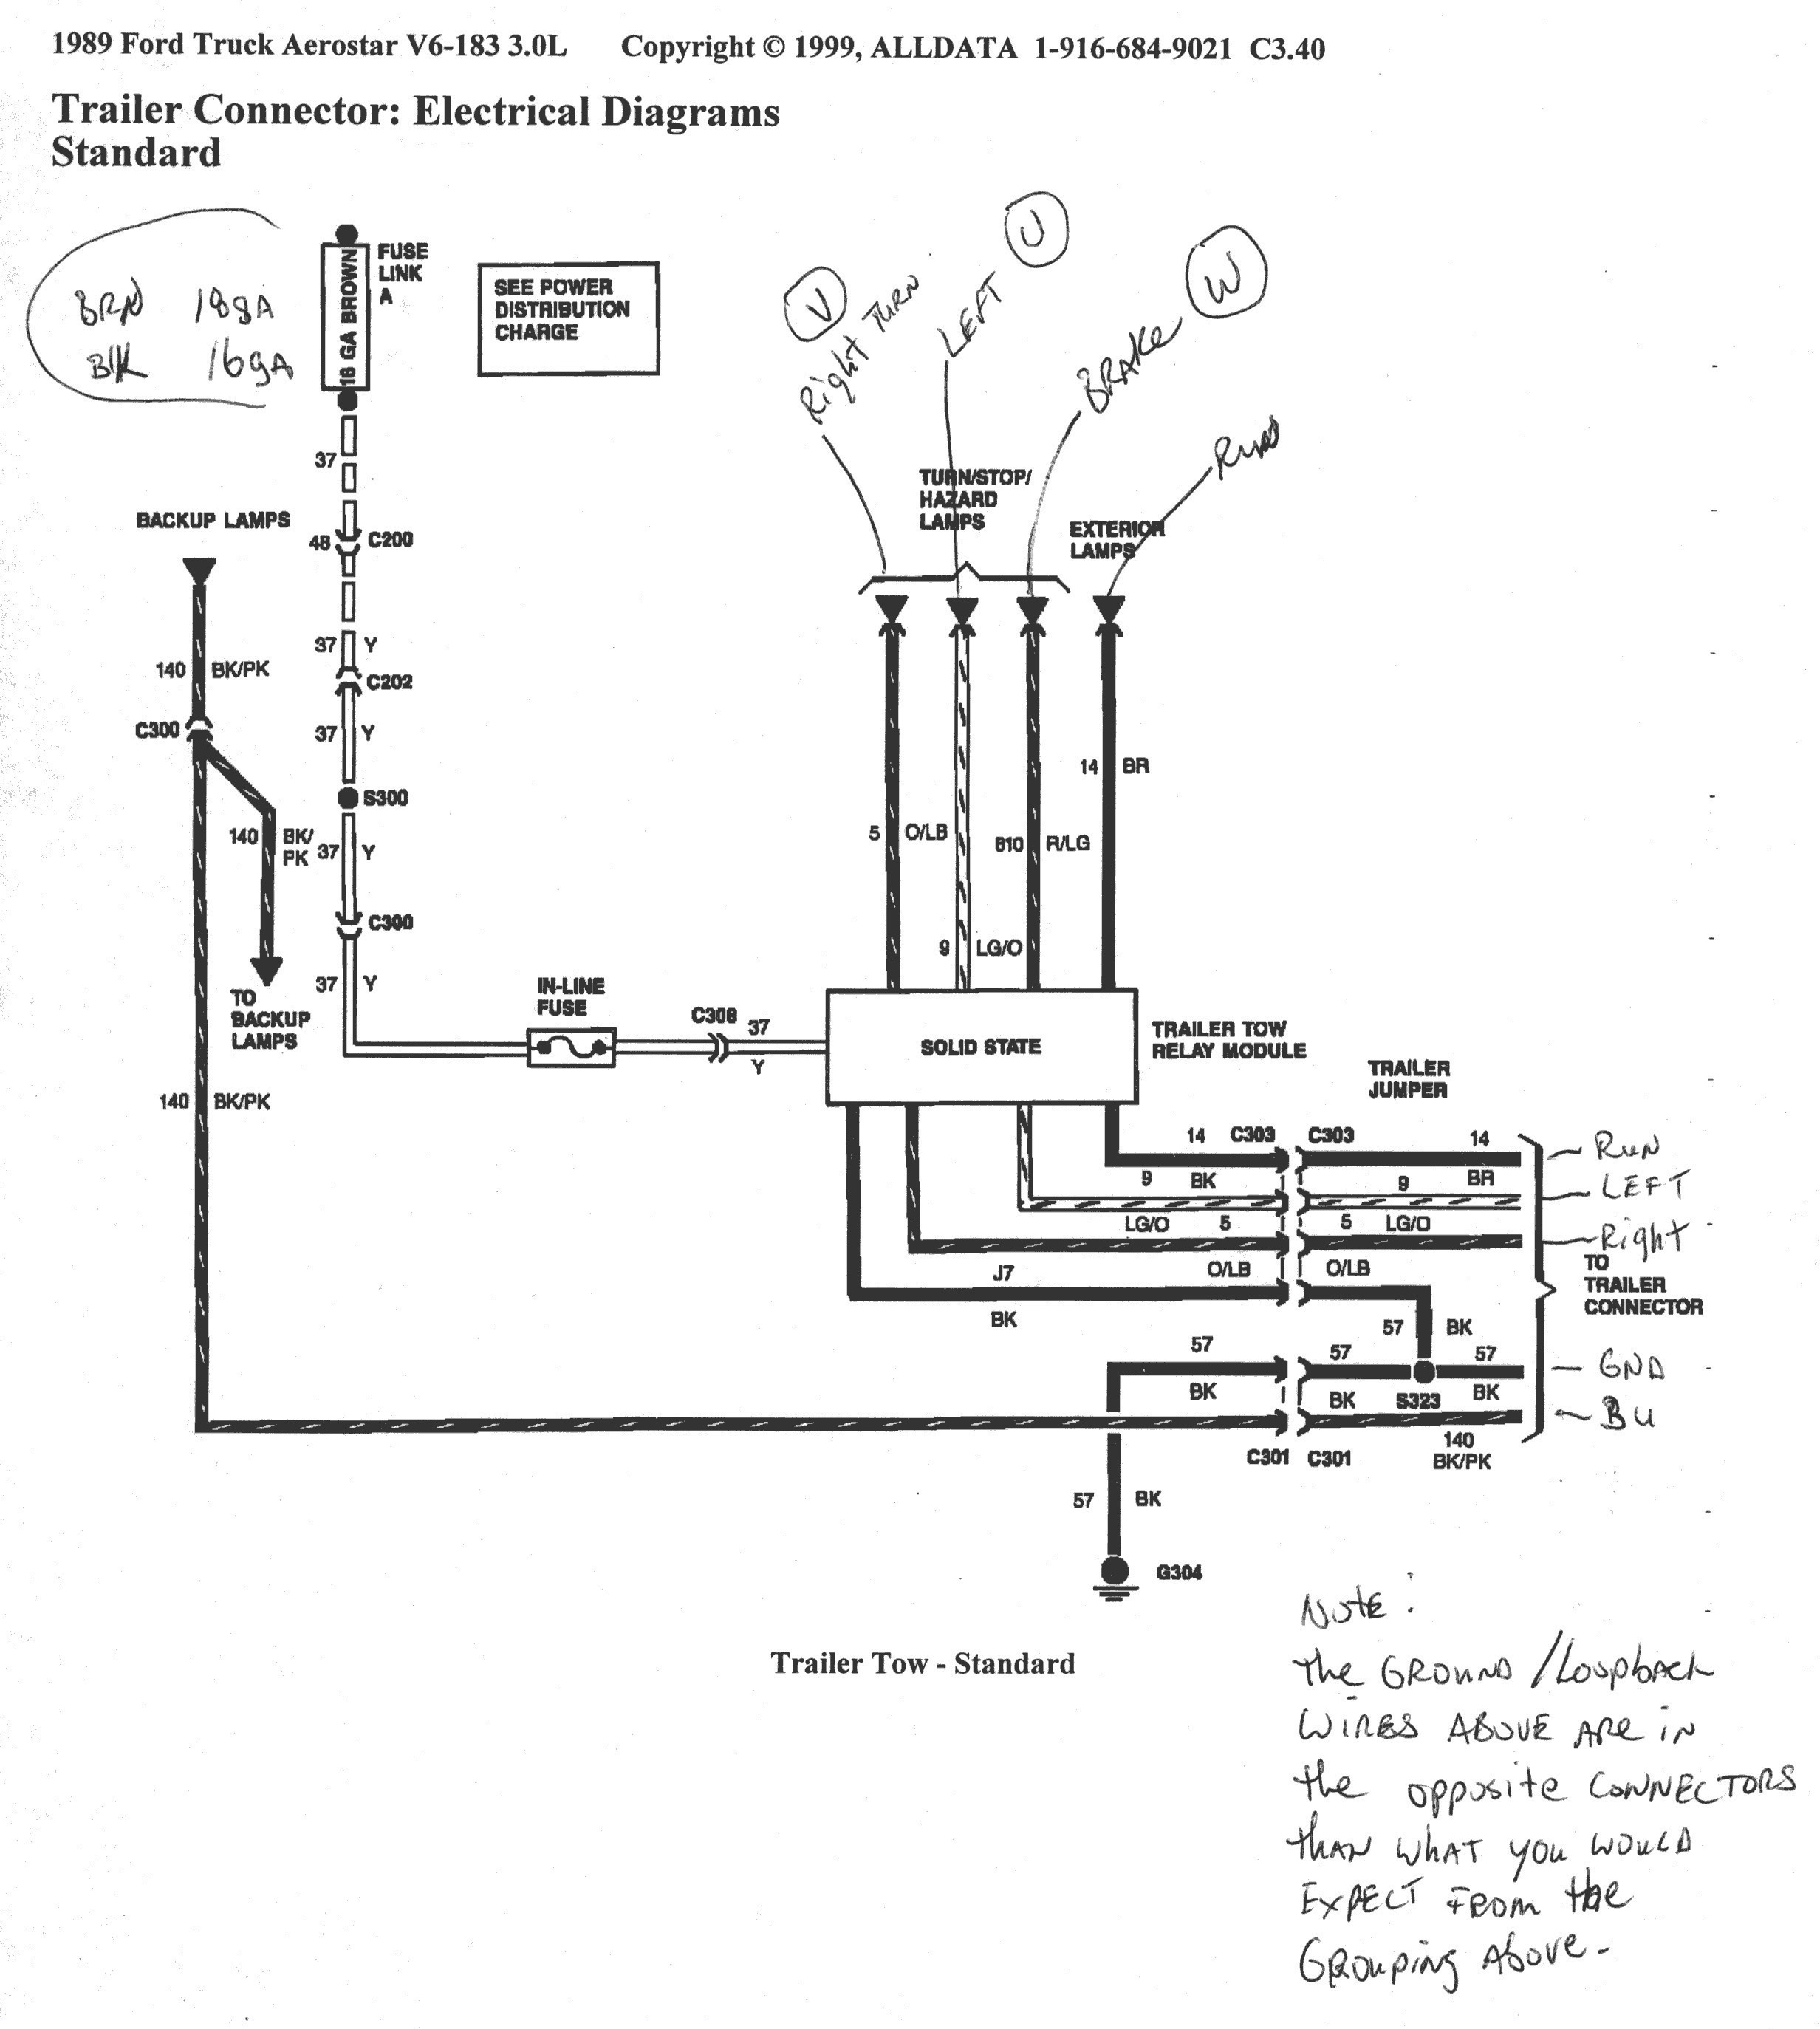 1996 ford F250 Tail Light Wiring Diagram Wiring Diagram for 1980 ford Van Wiring Diagram New Of 1996 ford F250 Tail Light Wiring Diagram